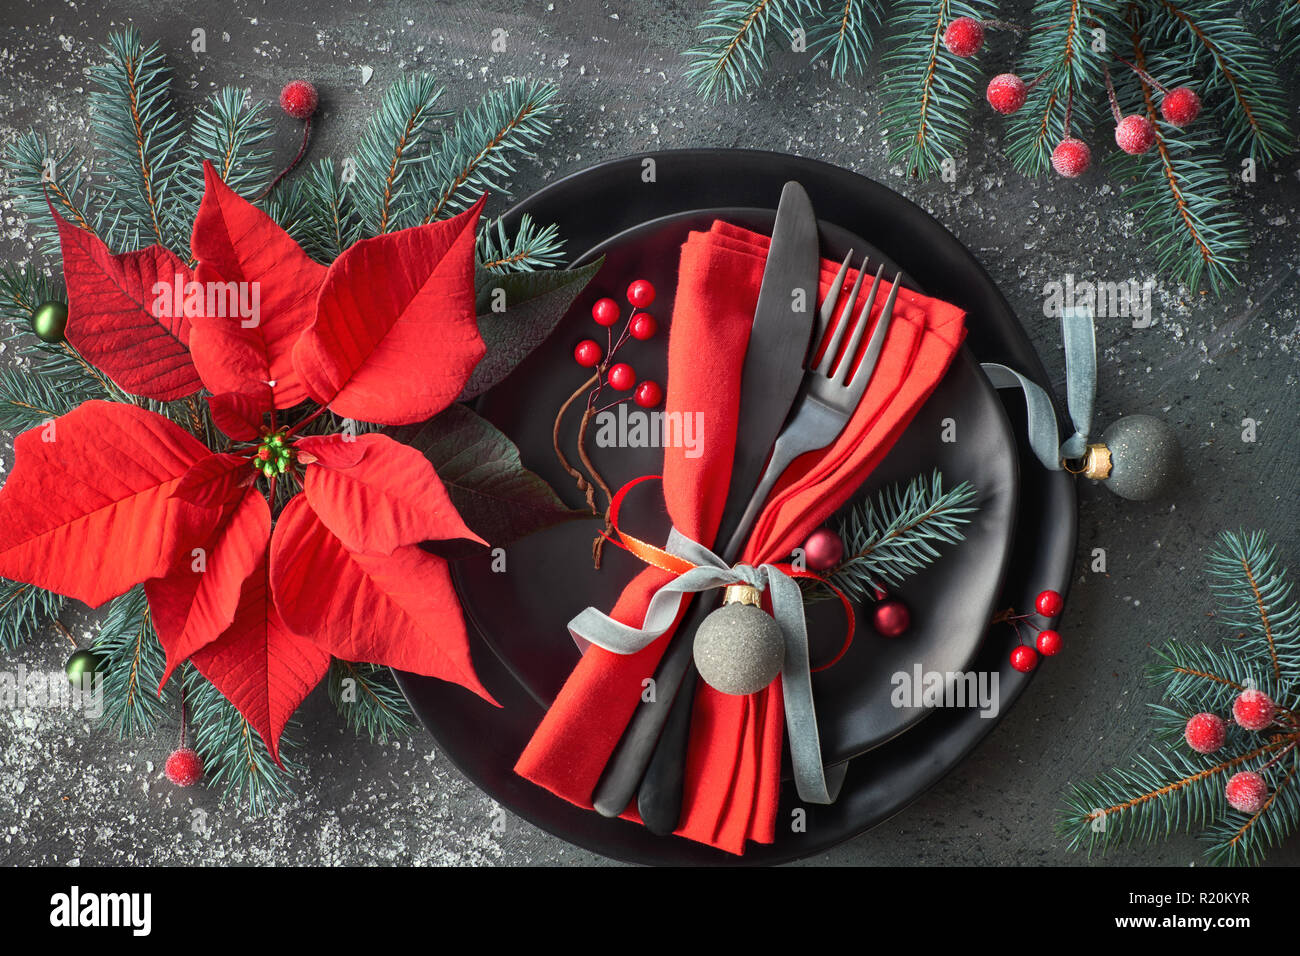 Flat Lay With Christmas Table Setting In Green And Red With Frosted Berries Trinkets Black Plates And Crockery On Dark Stock Photo Alamy